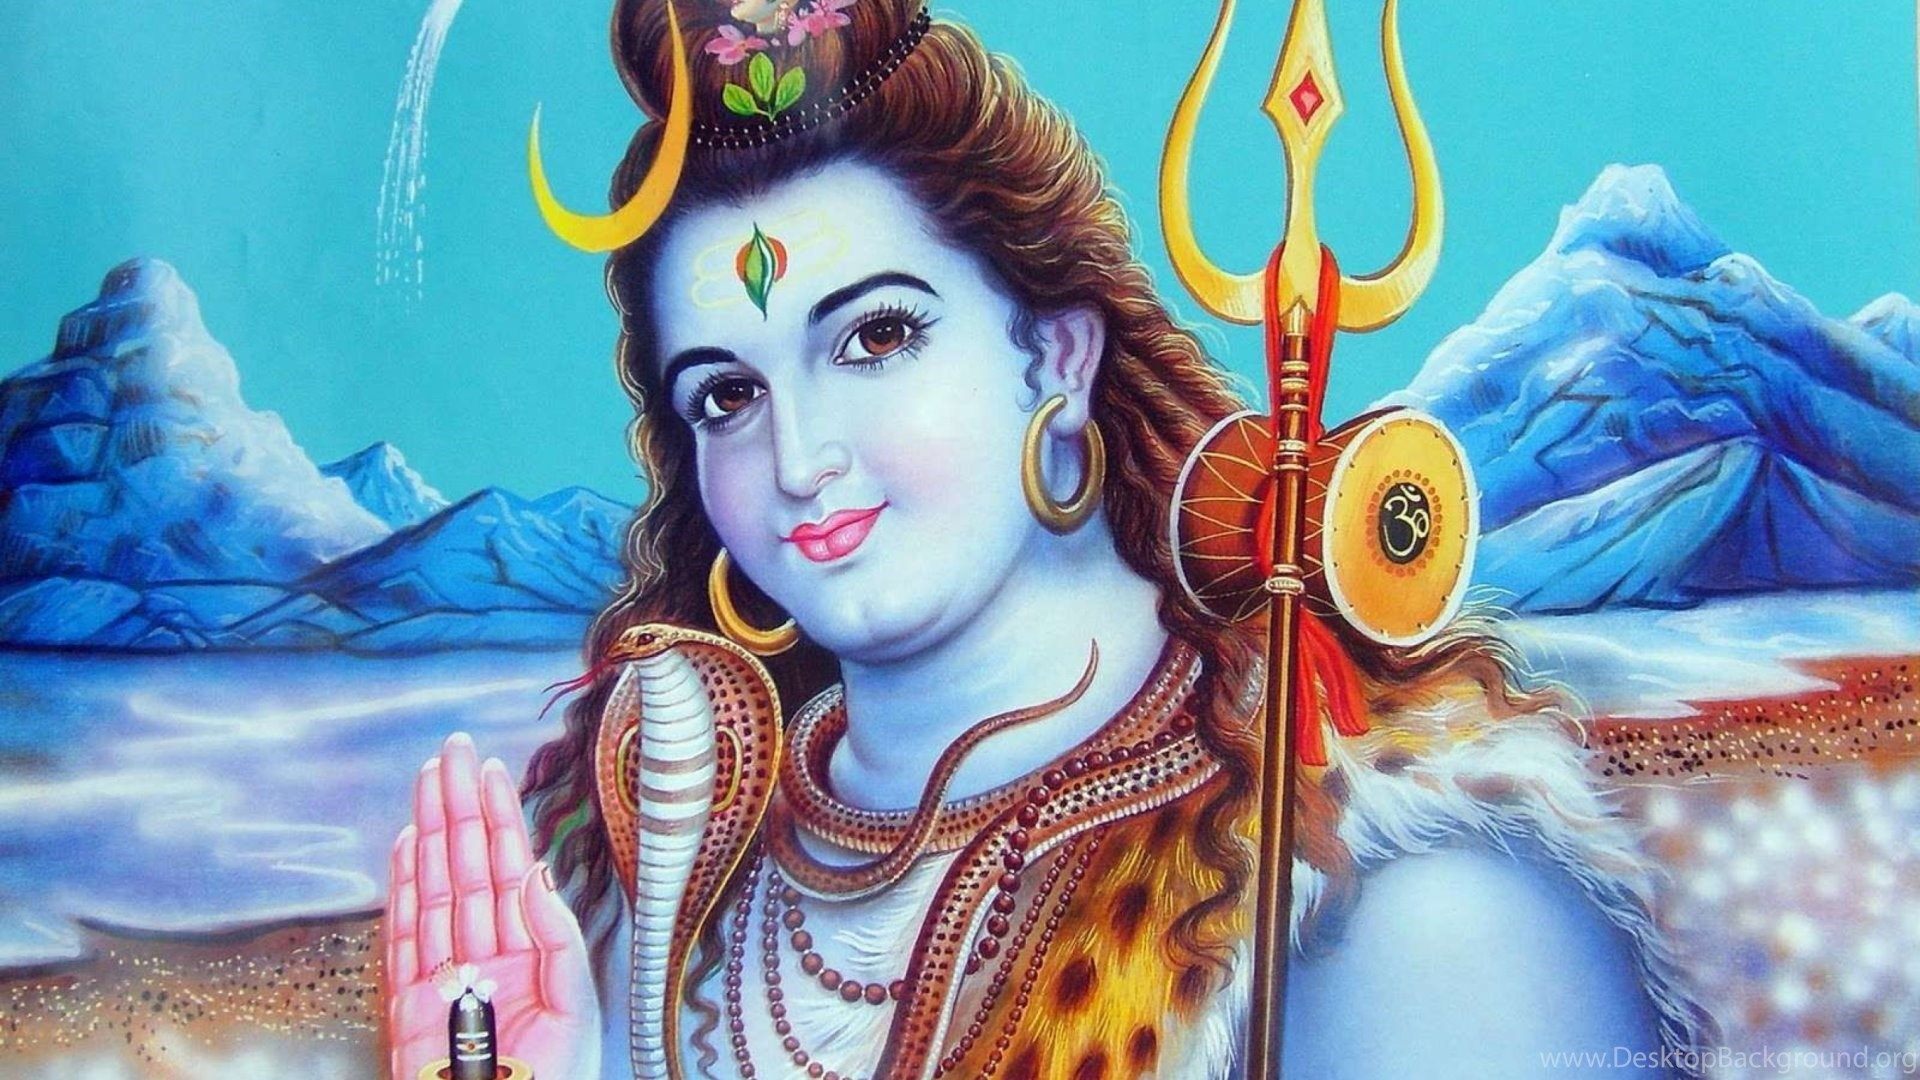 Lord shiva hd wallpapers 1920x1080 download